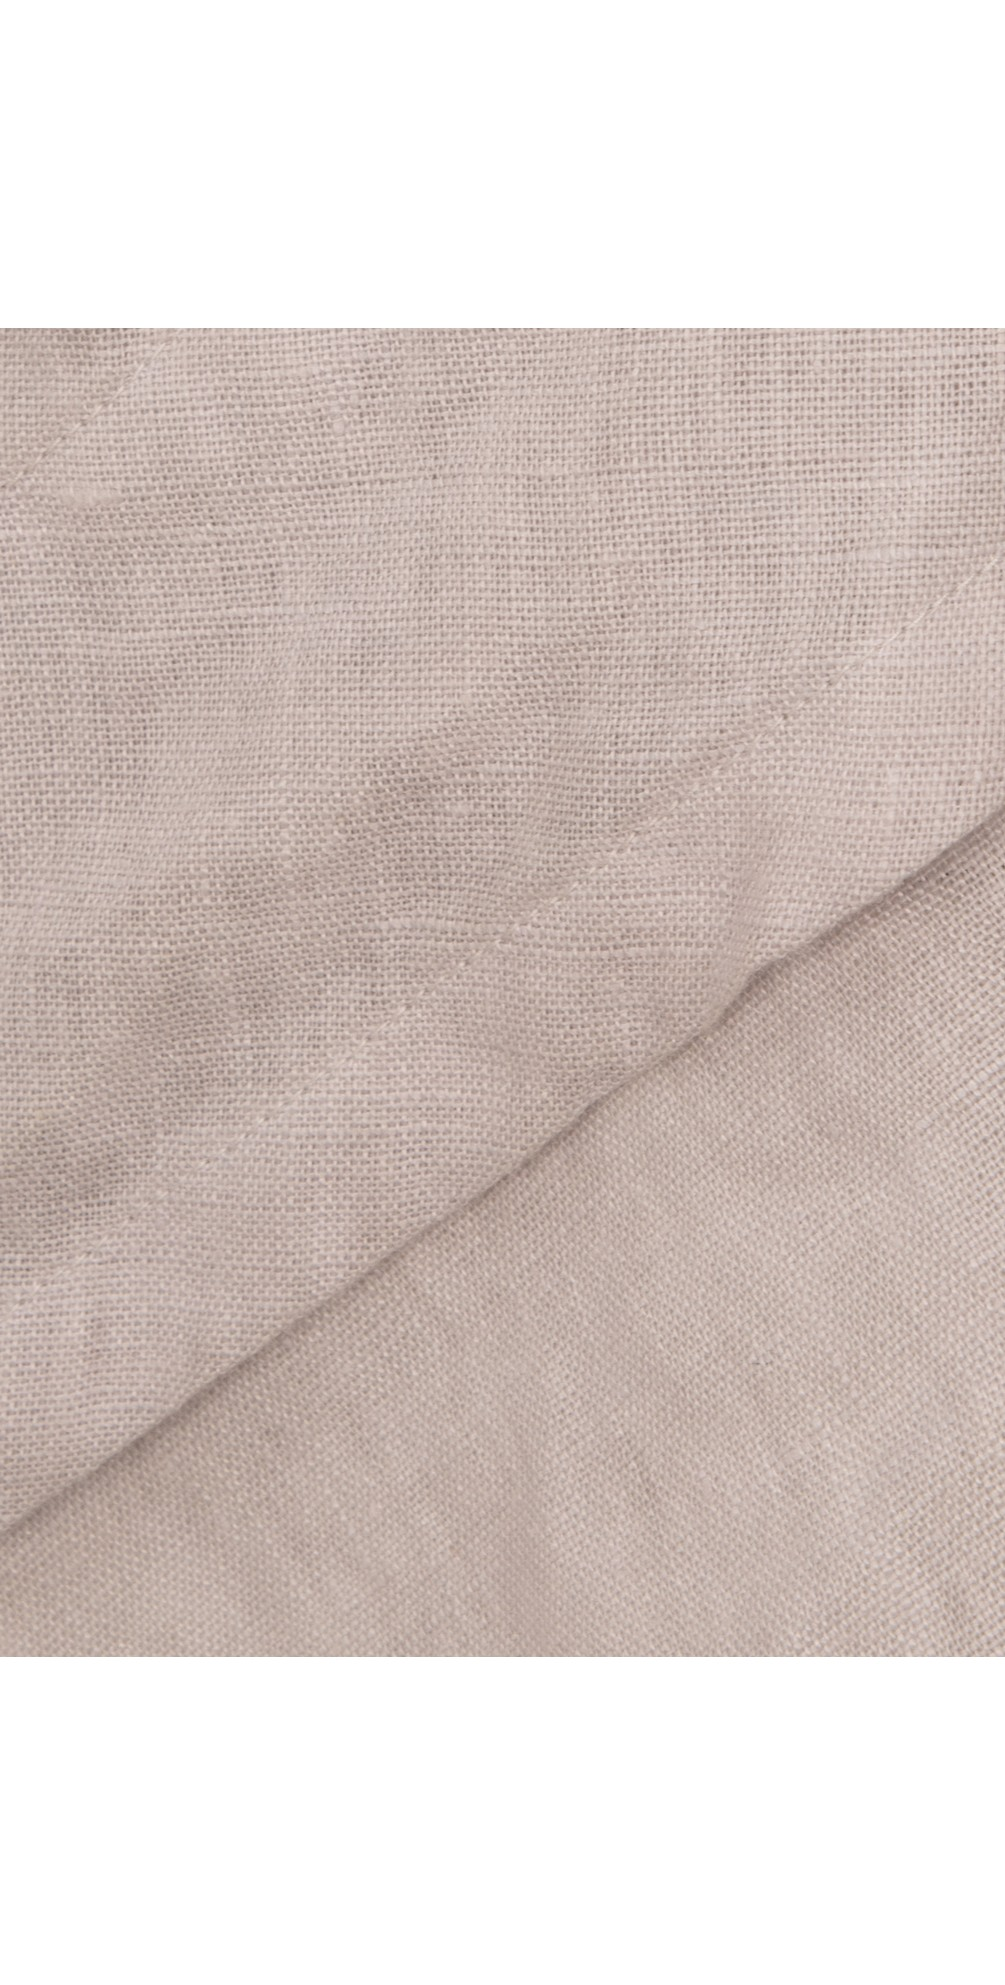 Capped Sleeve Linen Top main image